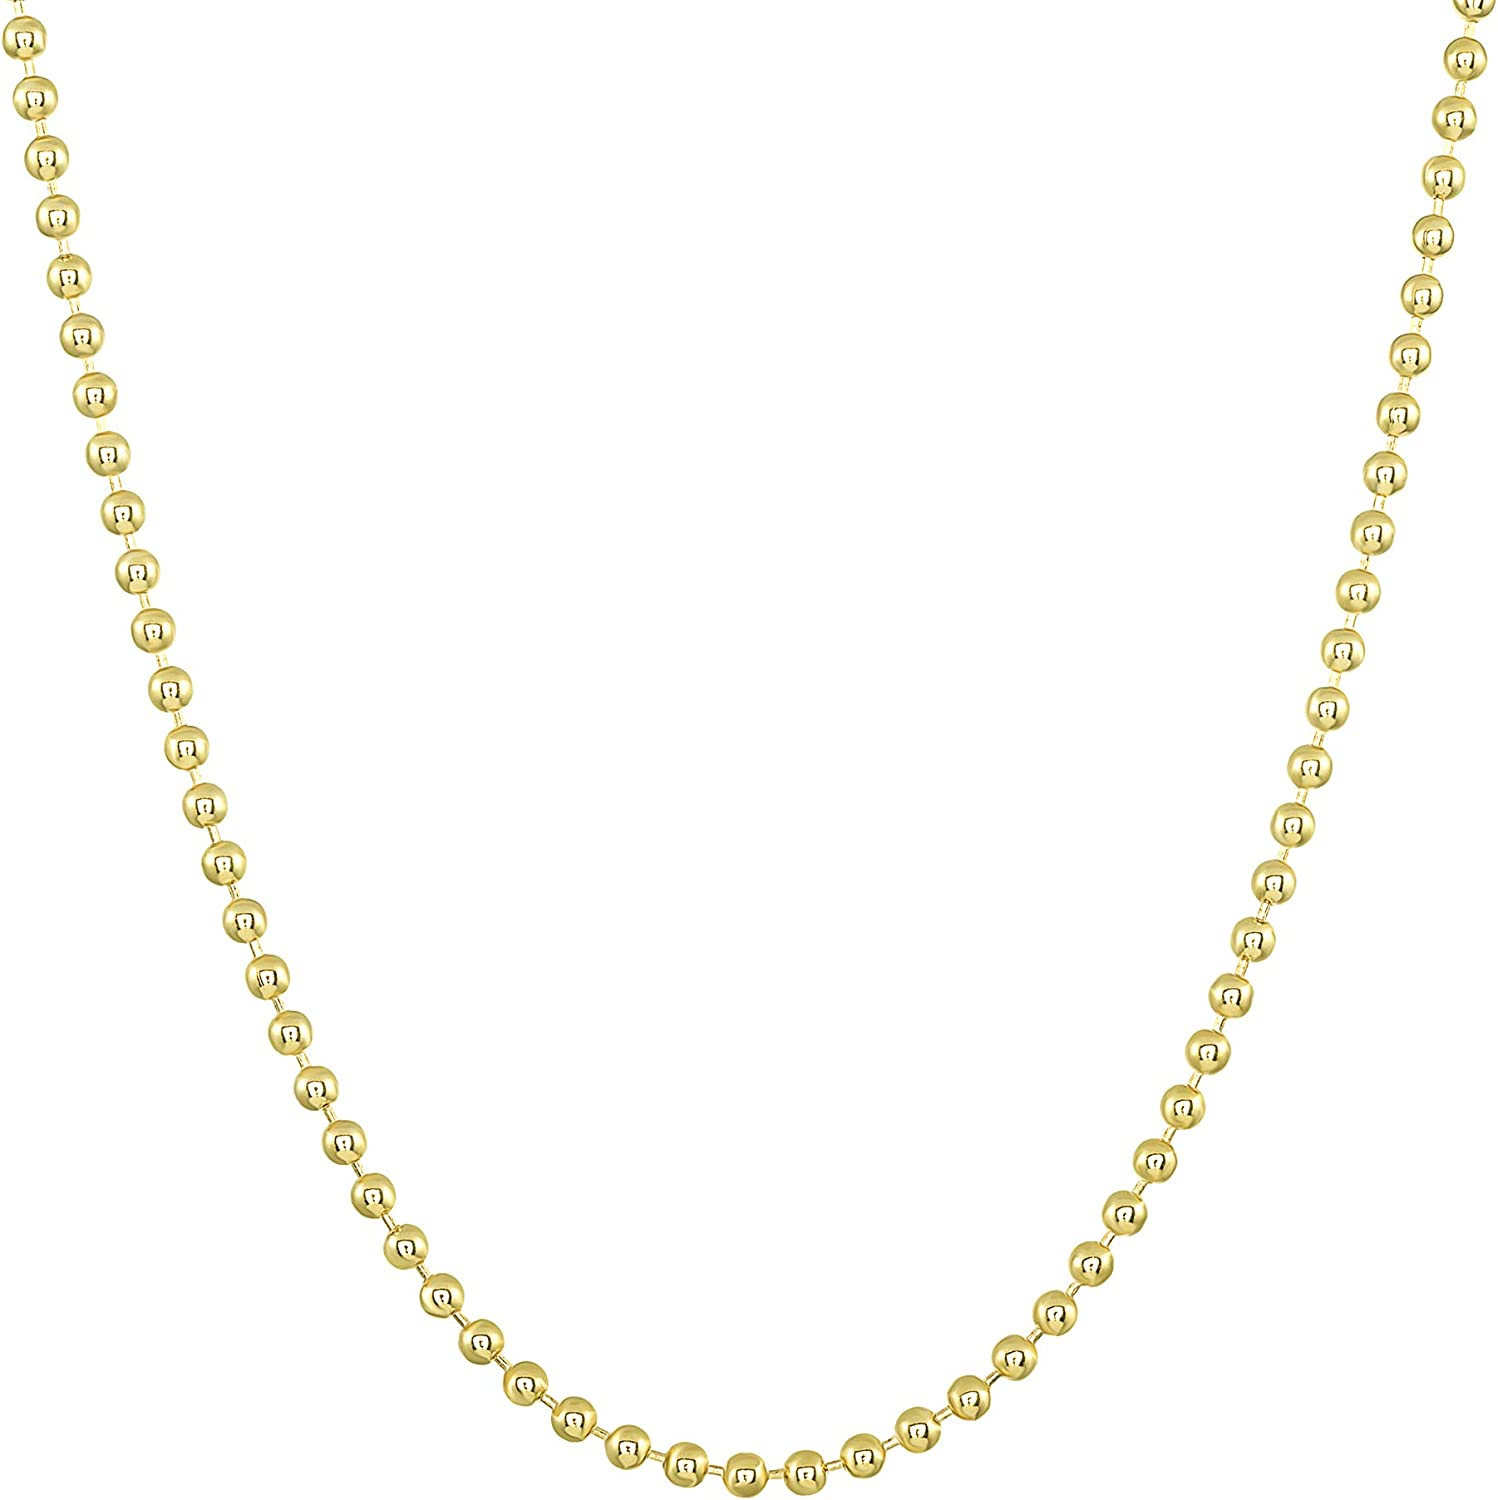 TOUSIATTAR 14k Gold-Filled Ball Chain 2 MM Necklace Gauge 12 Pendant for Jewelry 16-18 - 20-24 - 30-36 inches